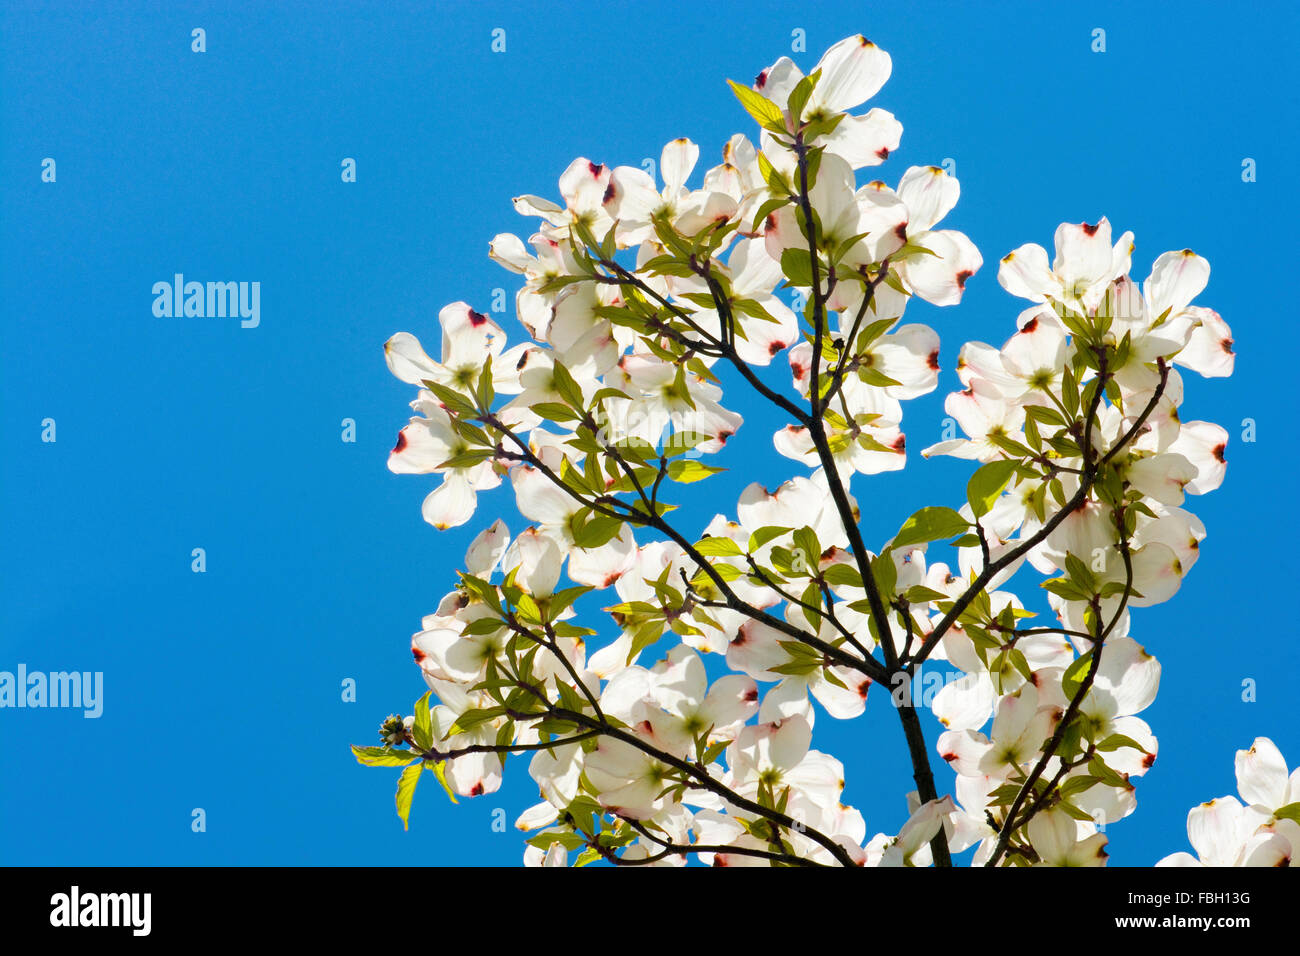 White dogwood tree branch blooming in the springtime against a clear ...